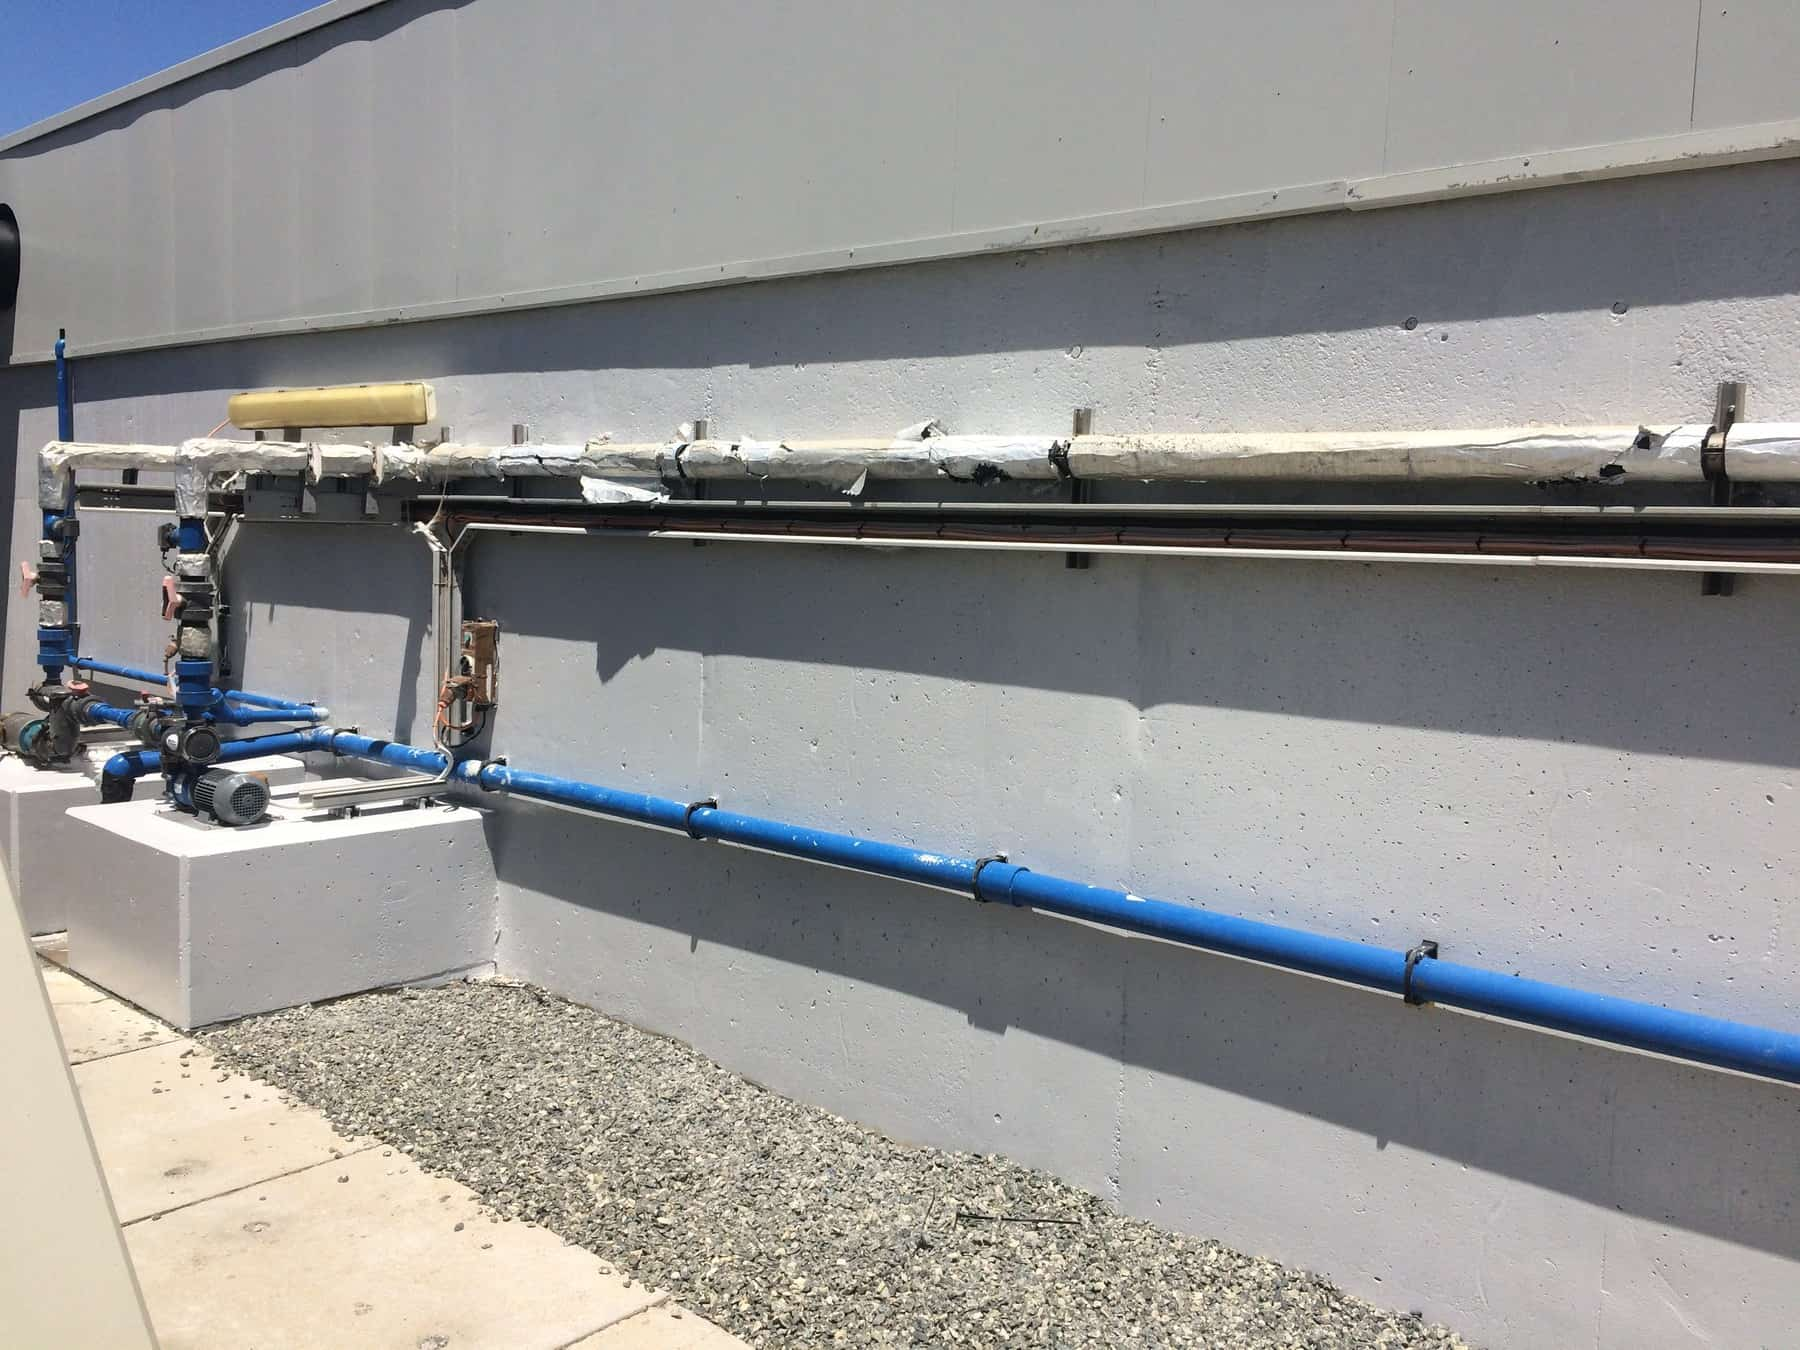 external concrete wall with horizontal pipes above gravel